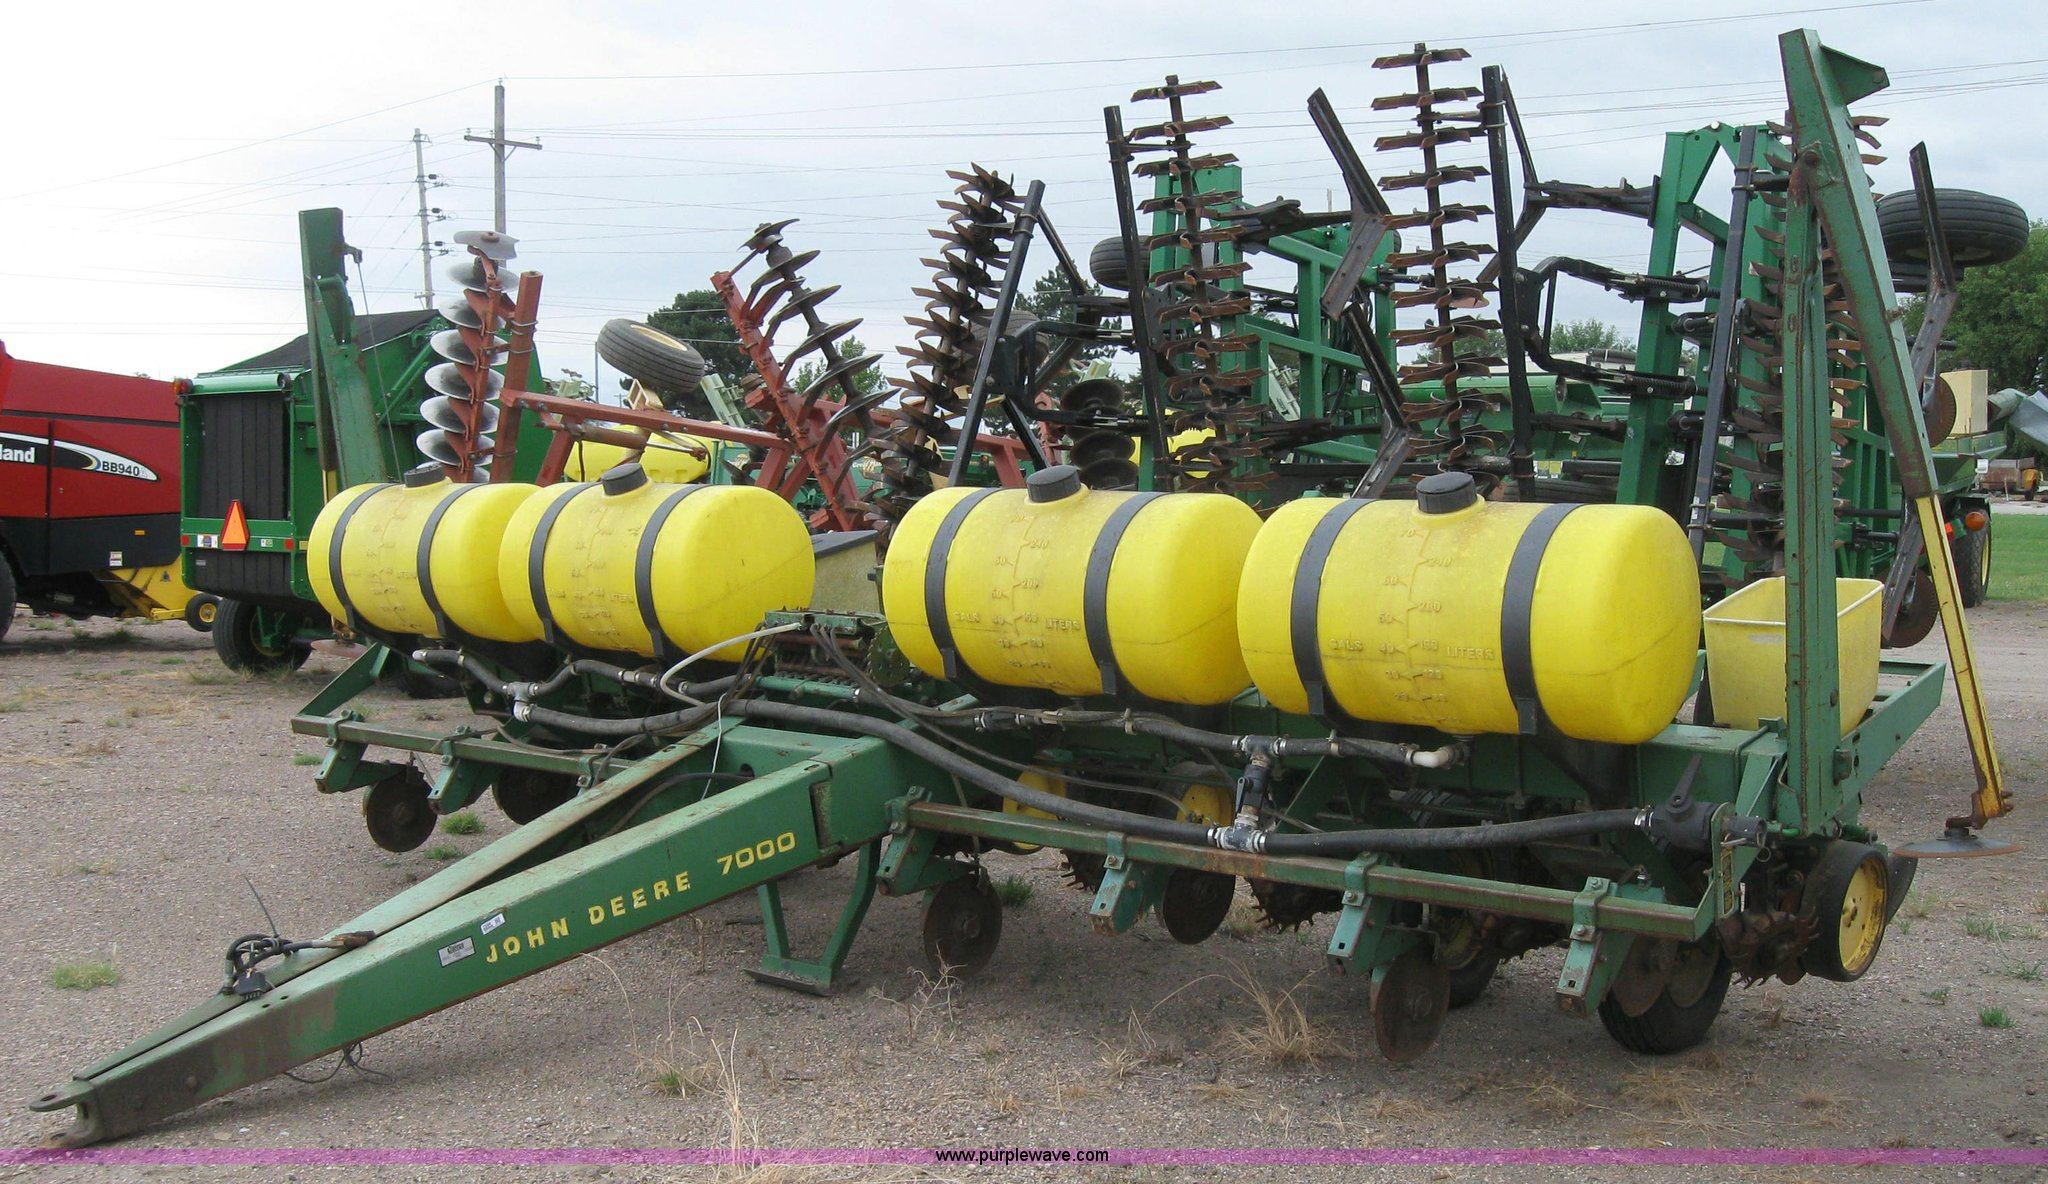 John Deere 7000 eight row planter for sale in Kansas